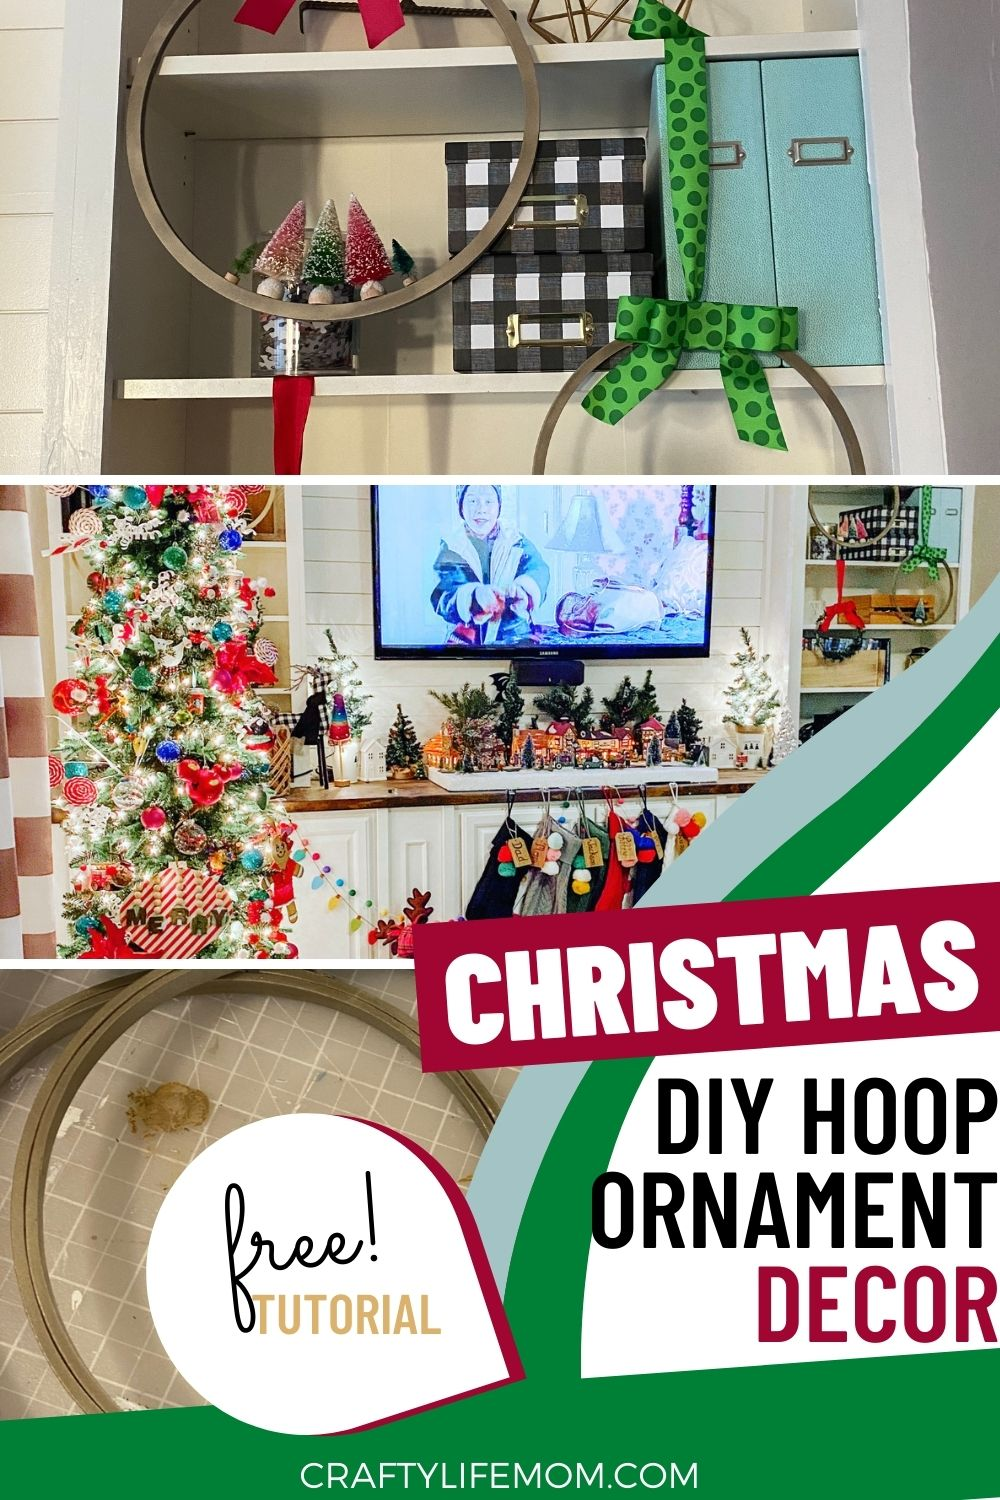 Create Your Own Christmas Hoop Ornament Decor using wooden embroidery hoops. Embellish with greenery, trees and ribbons to have a unique look on your wall or shelving.